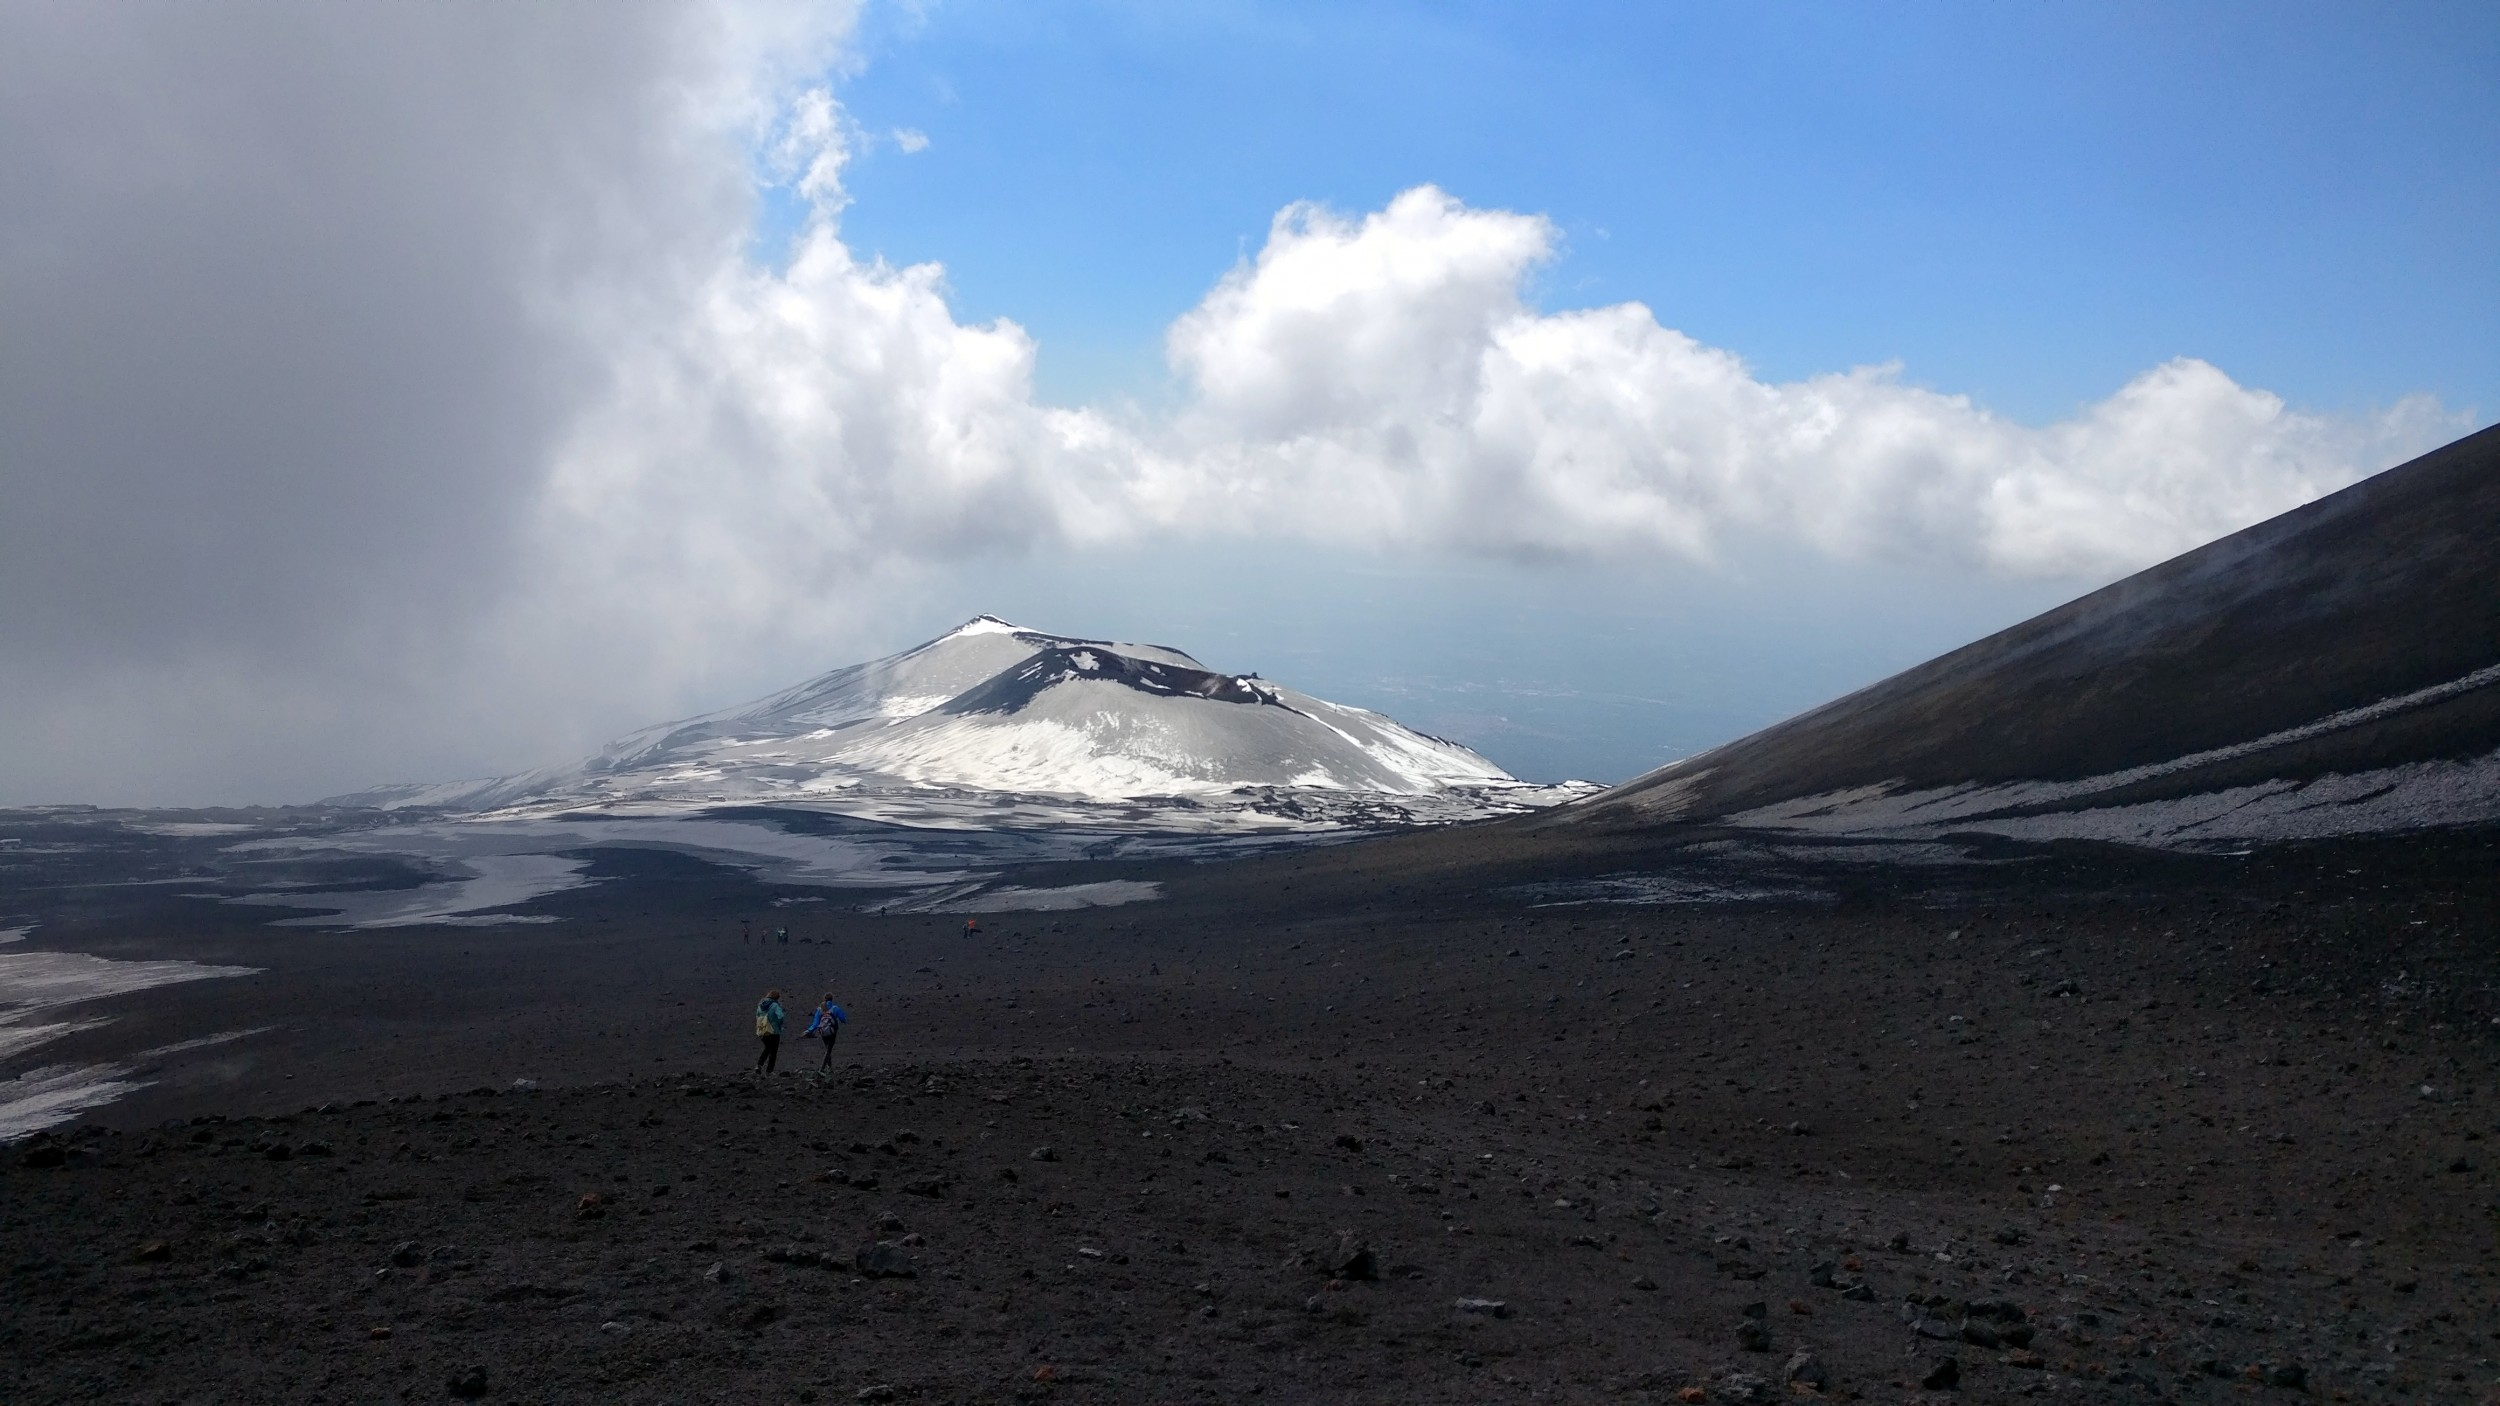 Etna Avance Mount Etna Sicily Visions Of Travel